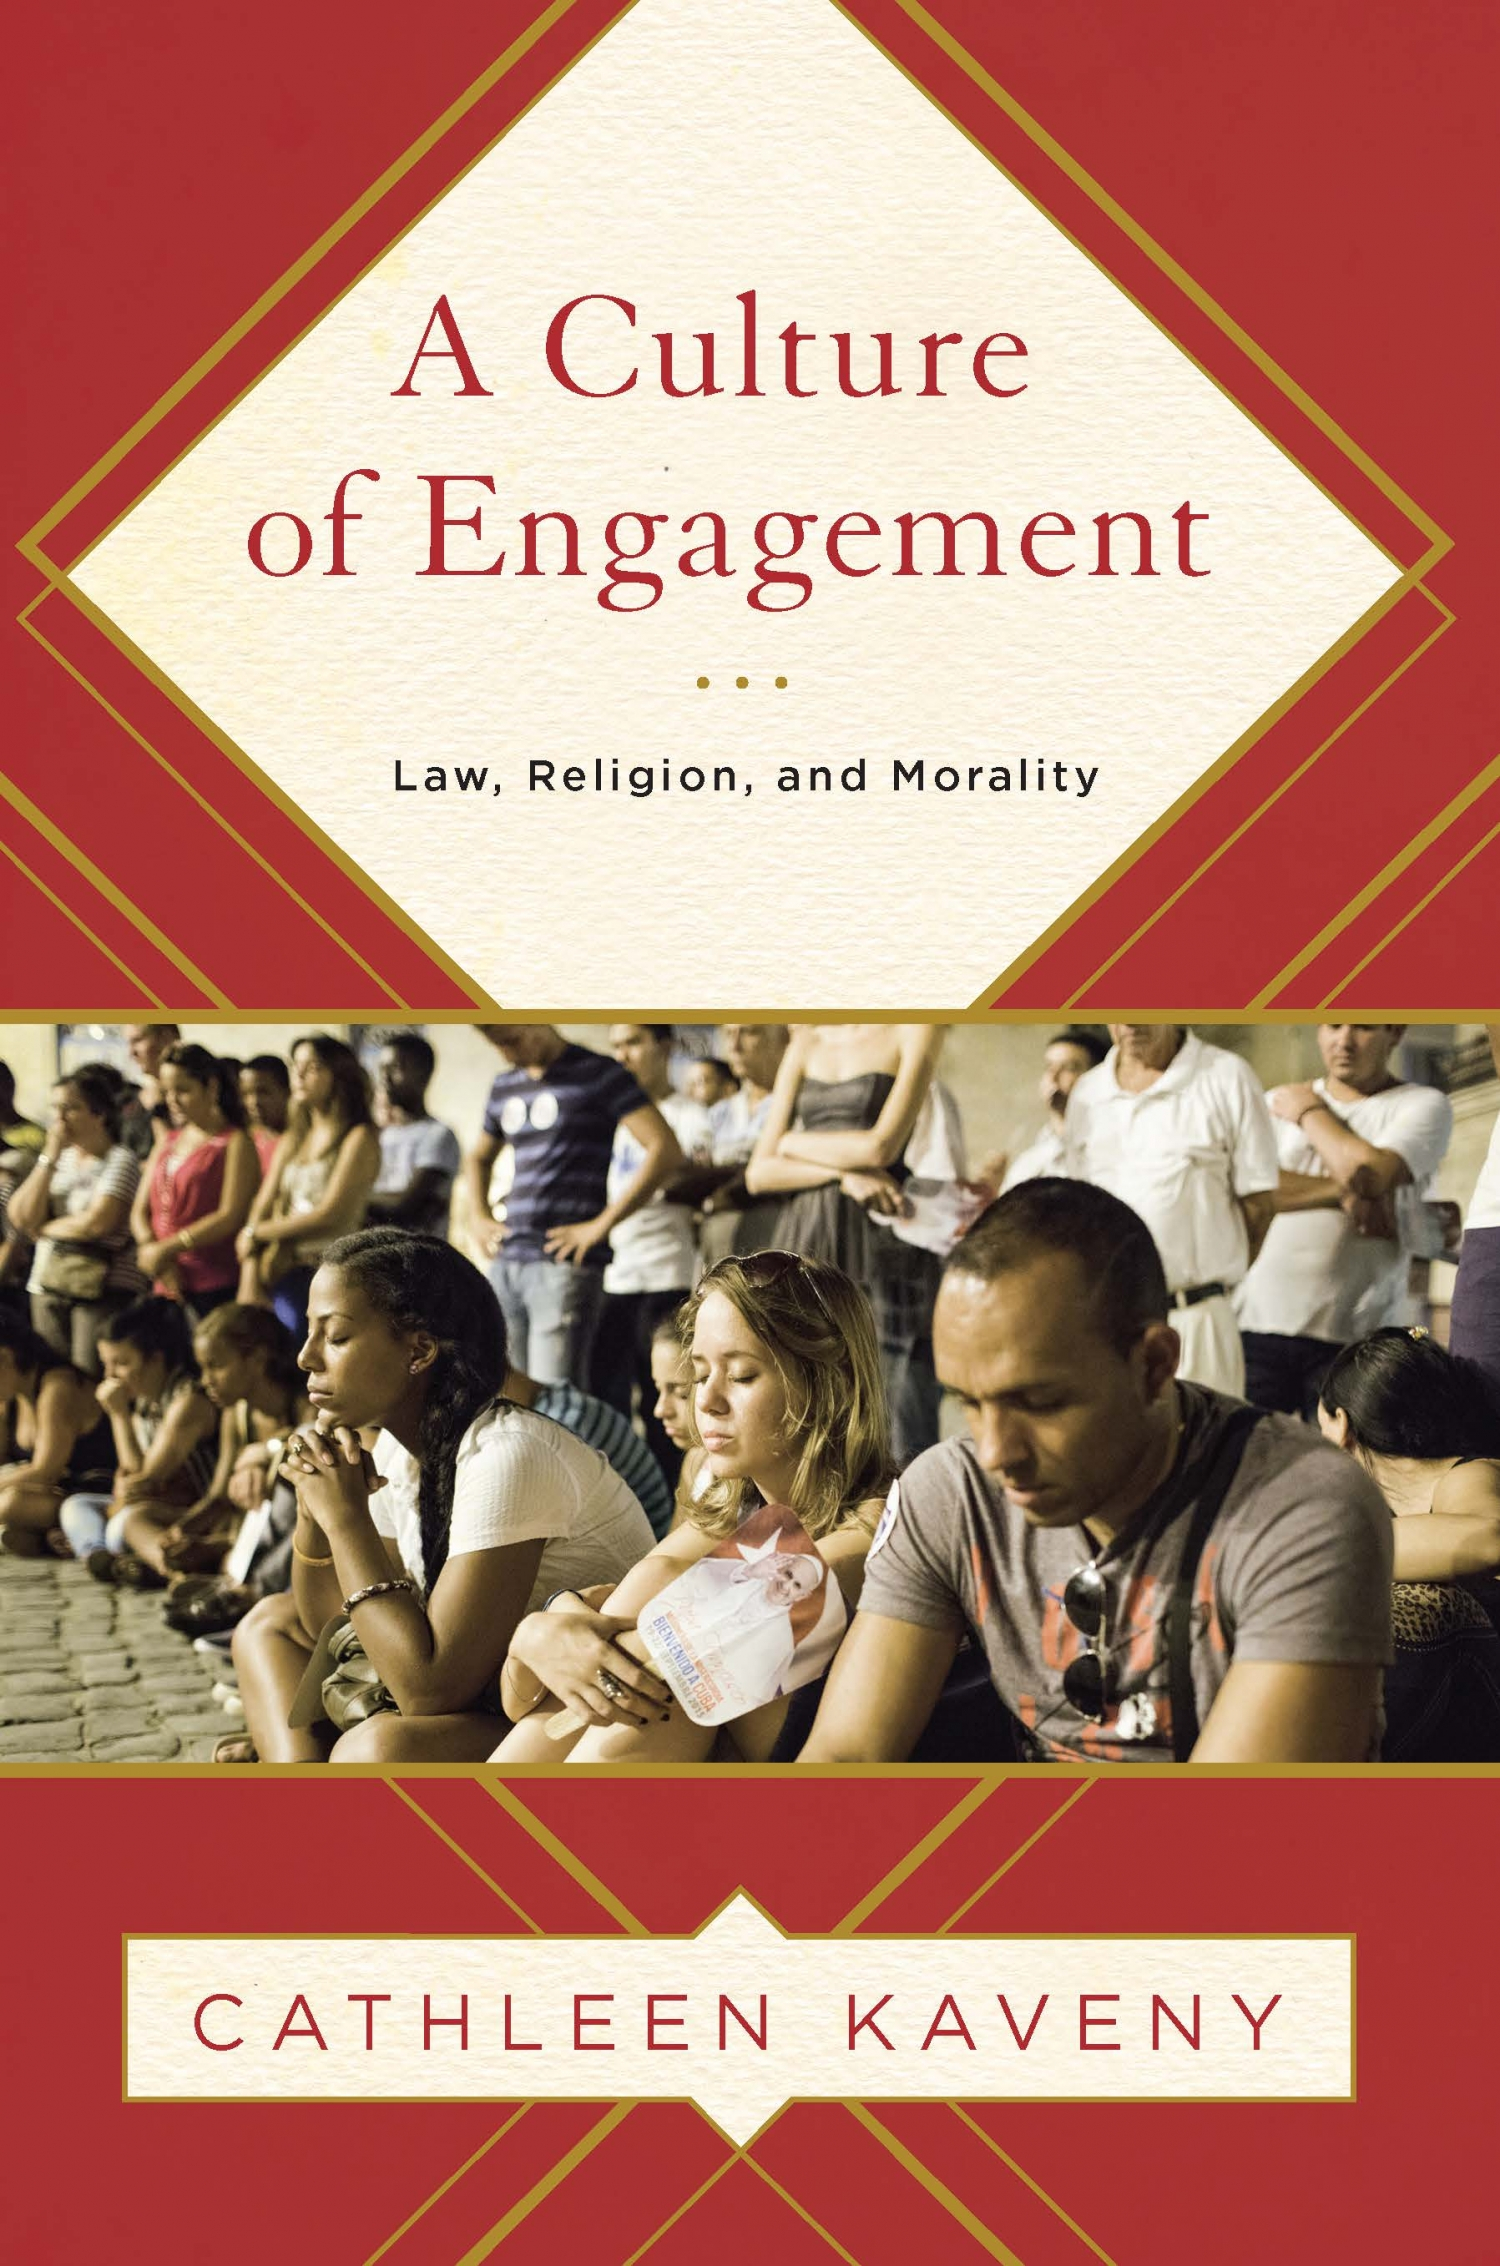 book review of a culture of engagement law religion and book review of a culture of engagement law religion and morality 9781626163034 foreword reviews